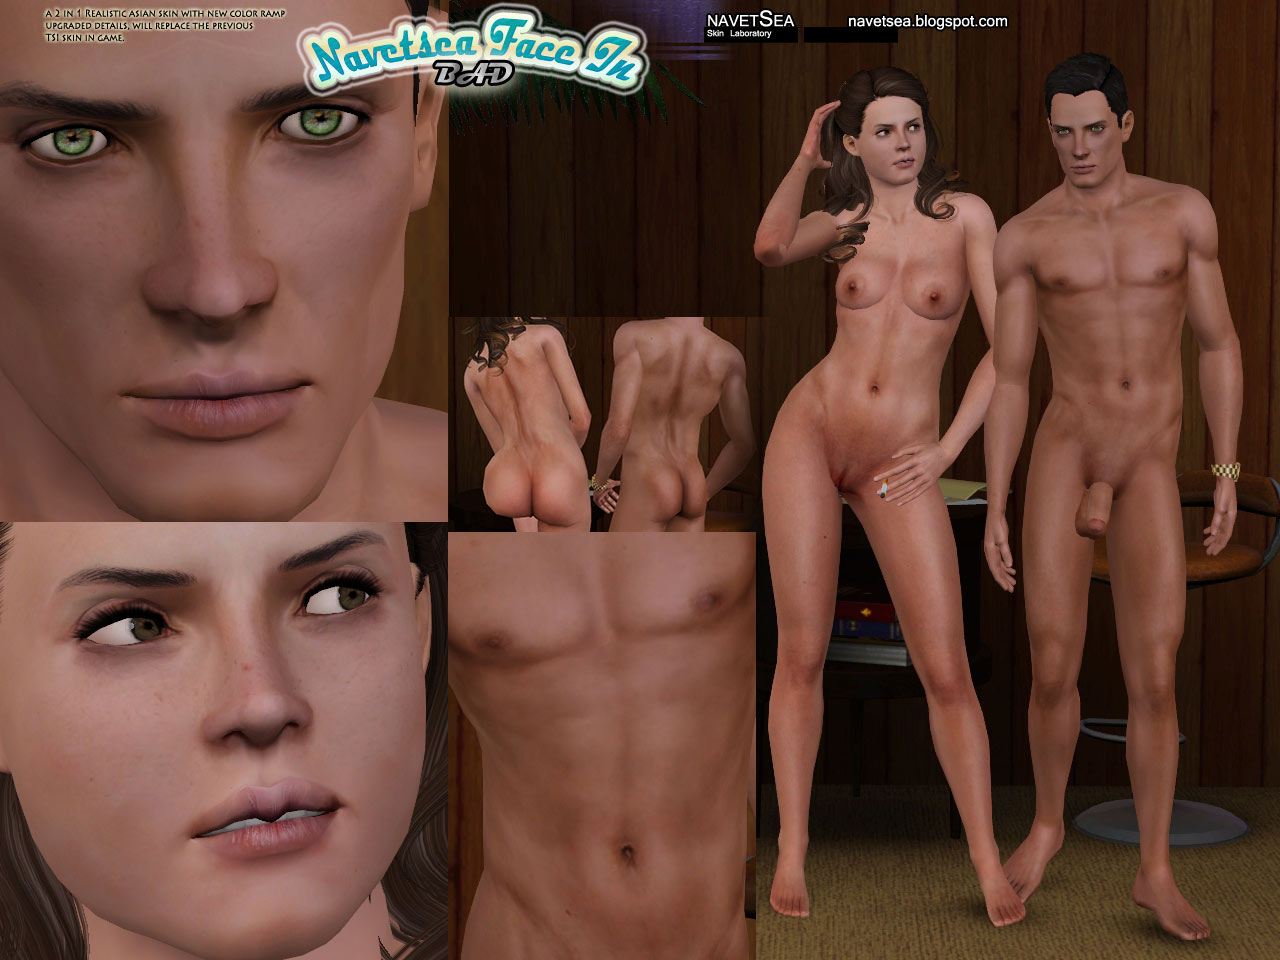 Sims 3 men naked mod exploited galleries